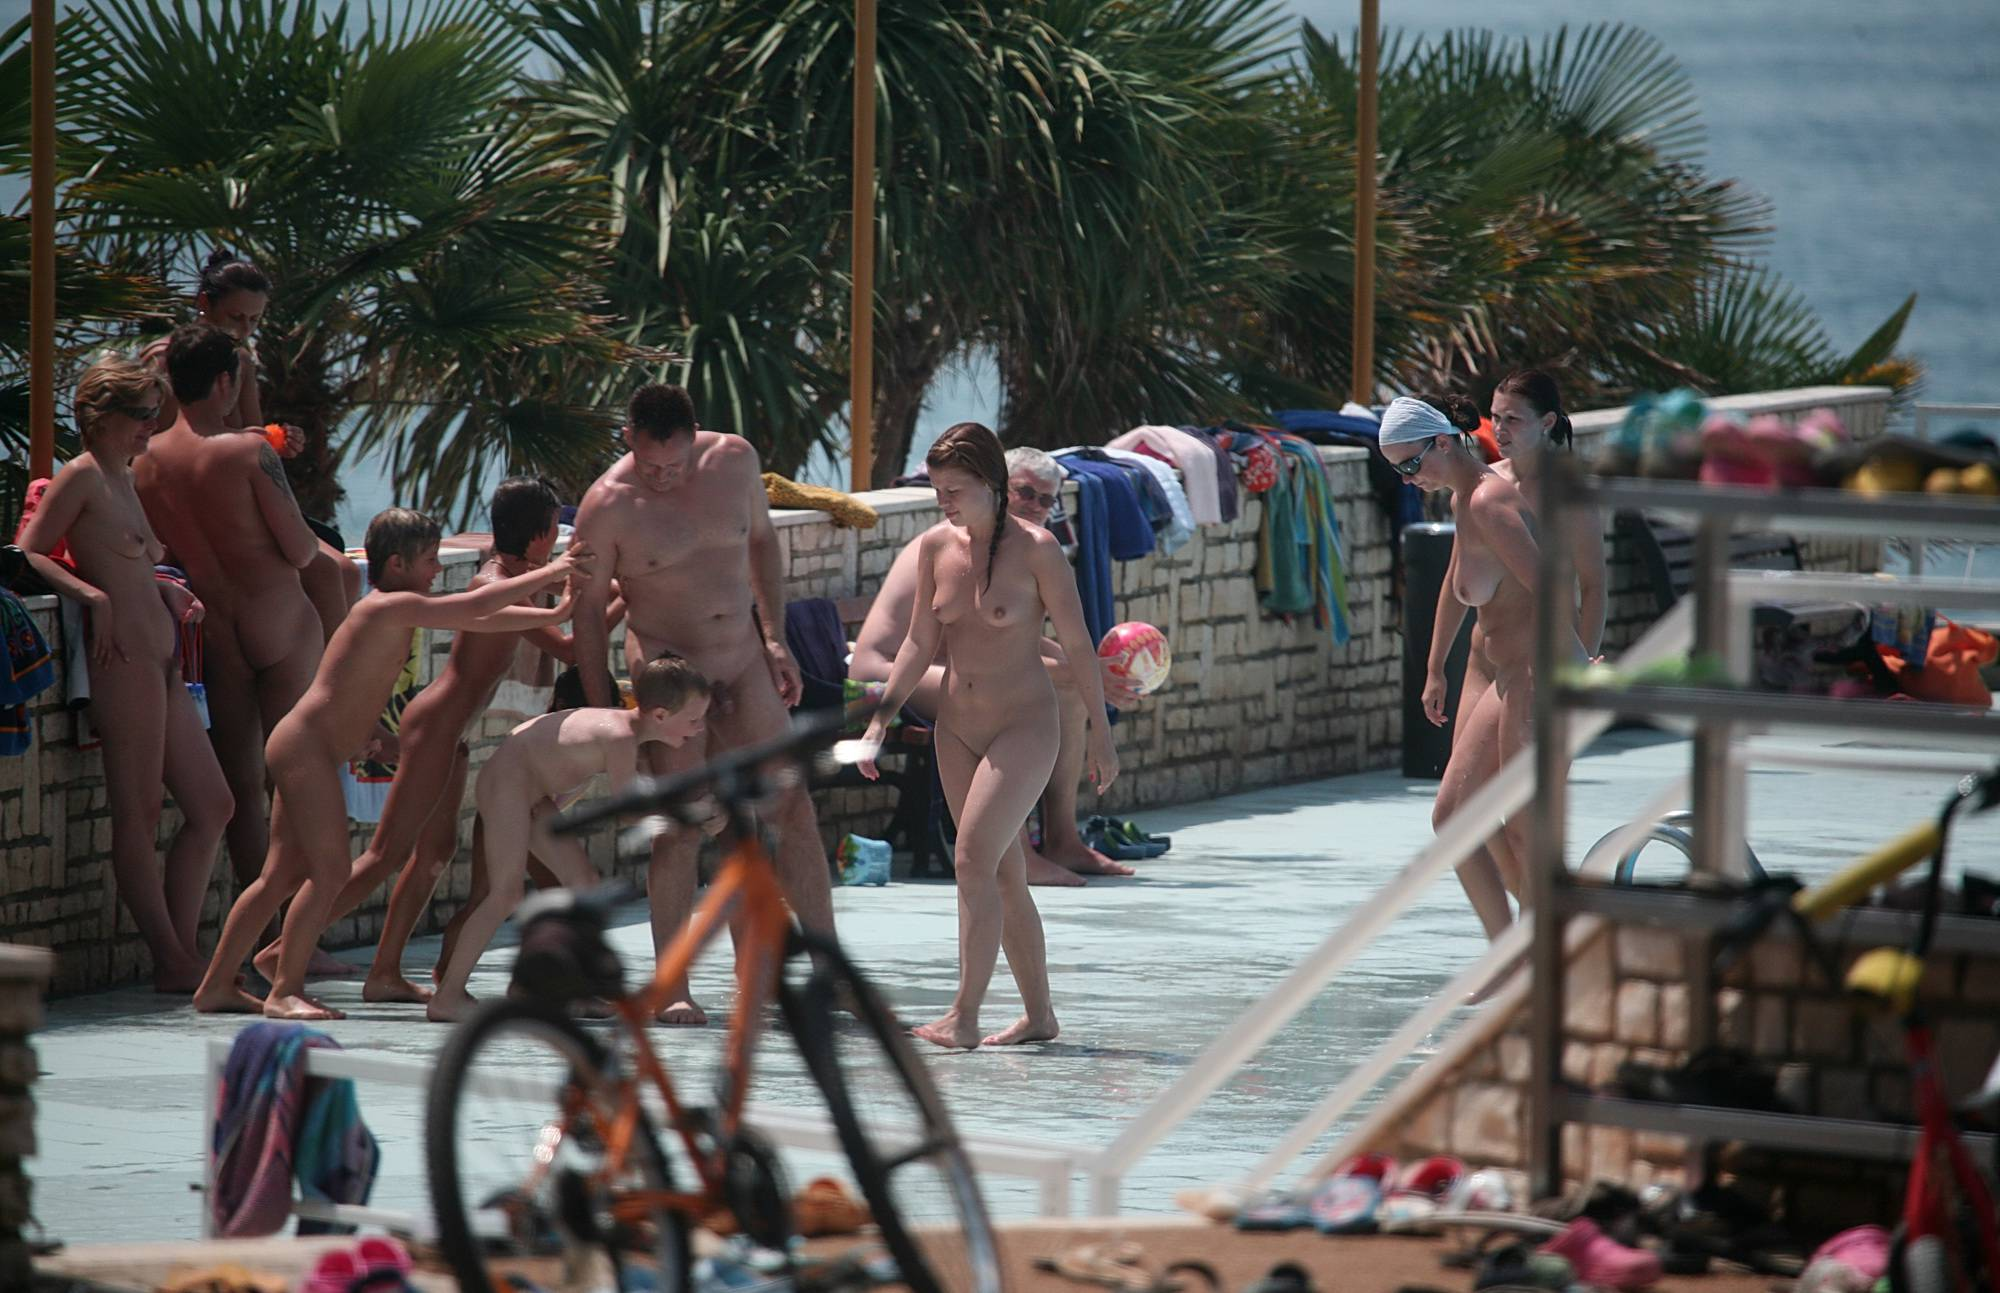 Nudist Gallery Biking On The Boardwalk - 1